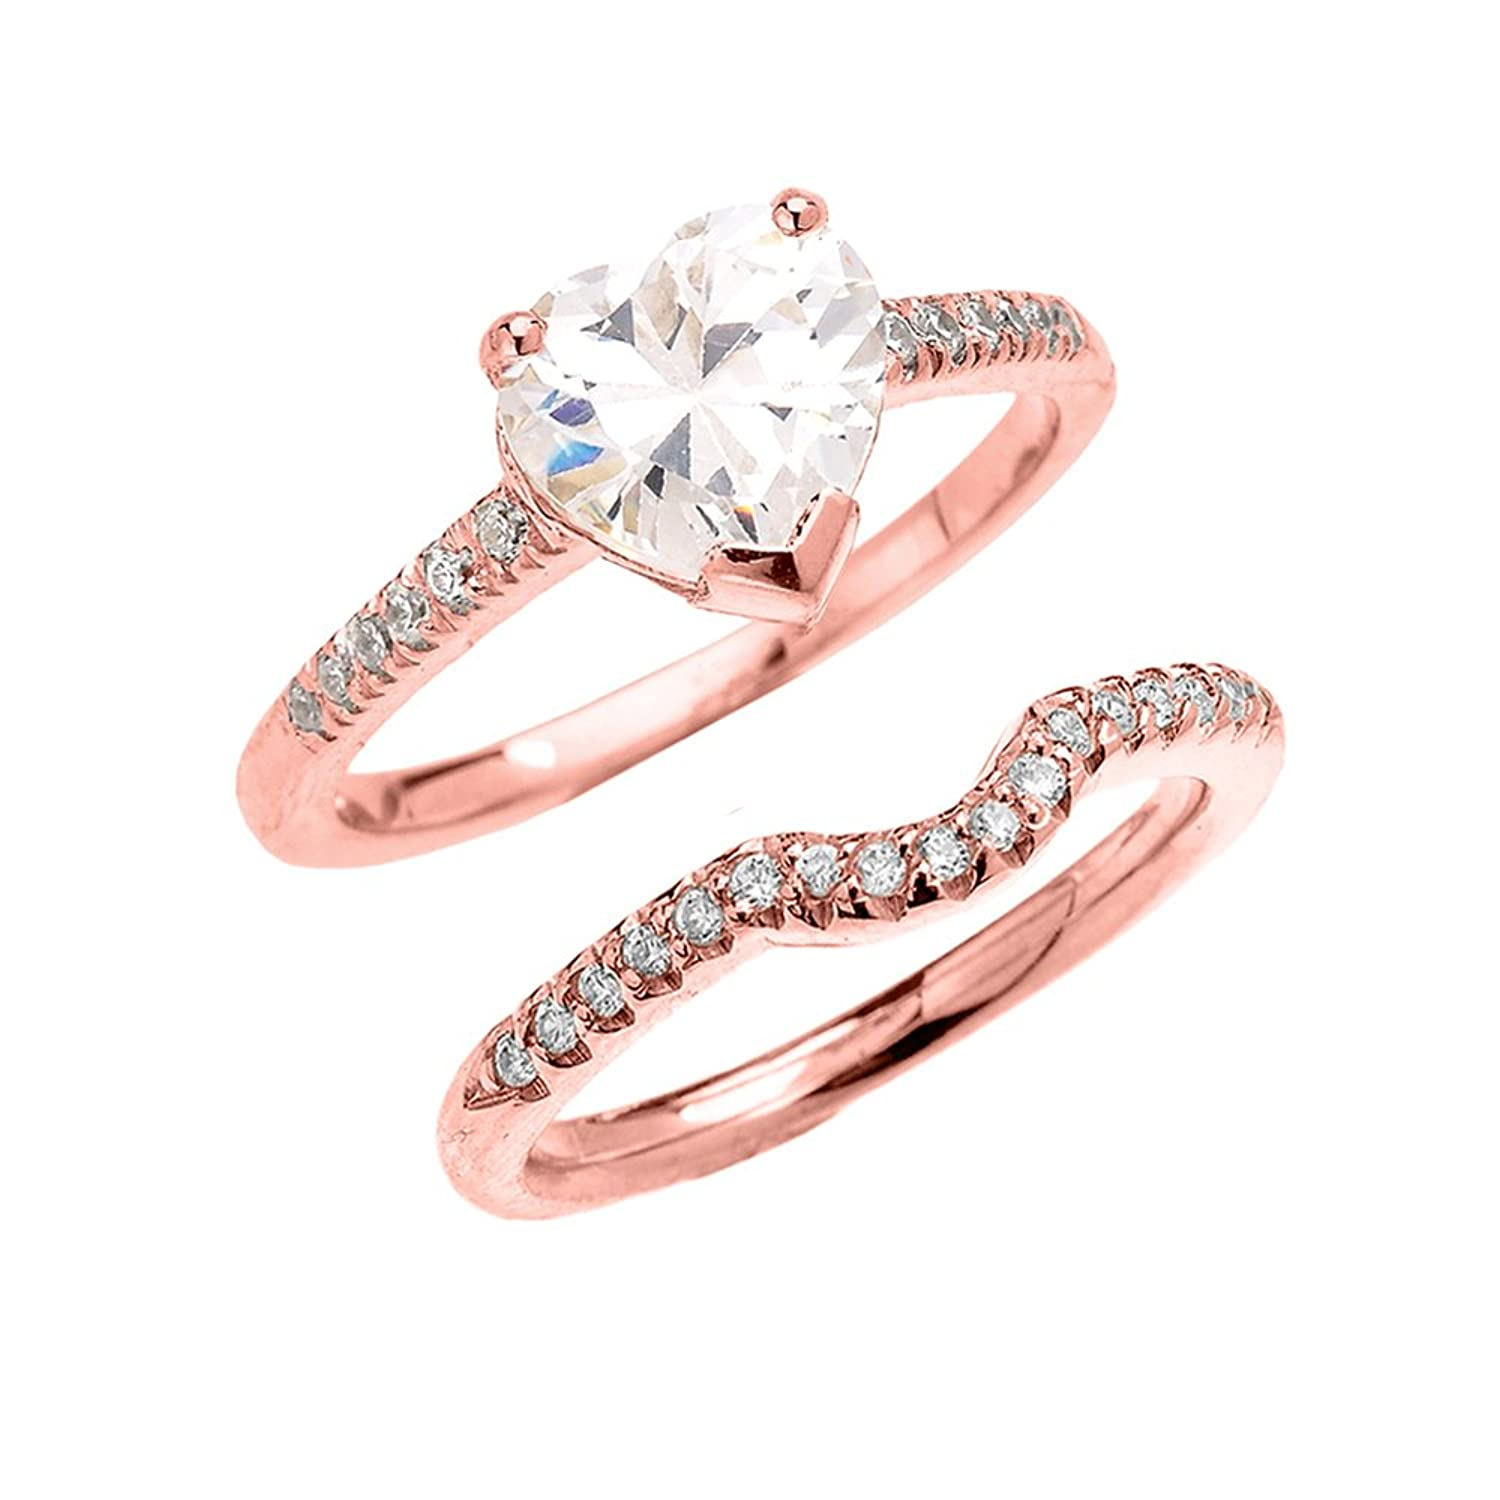 10k Rose Gold Dainty Heart Shape Cubic Zirconia Solitaire Wedding Ring Set